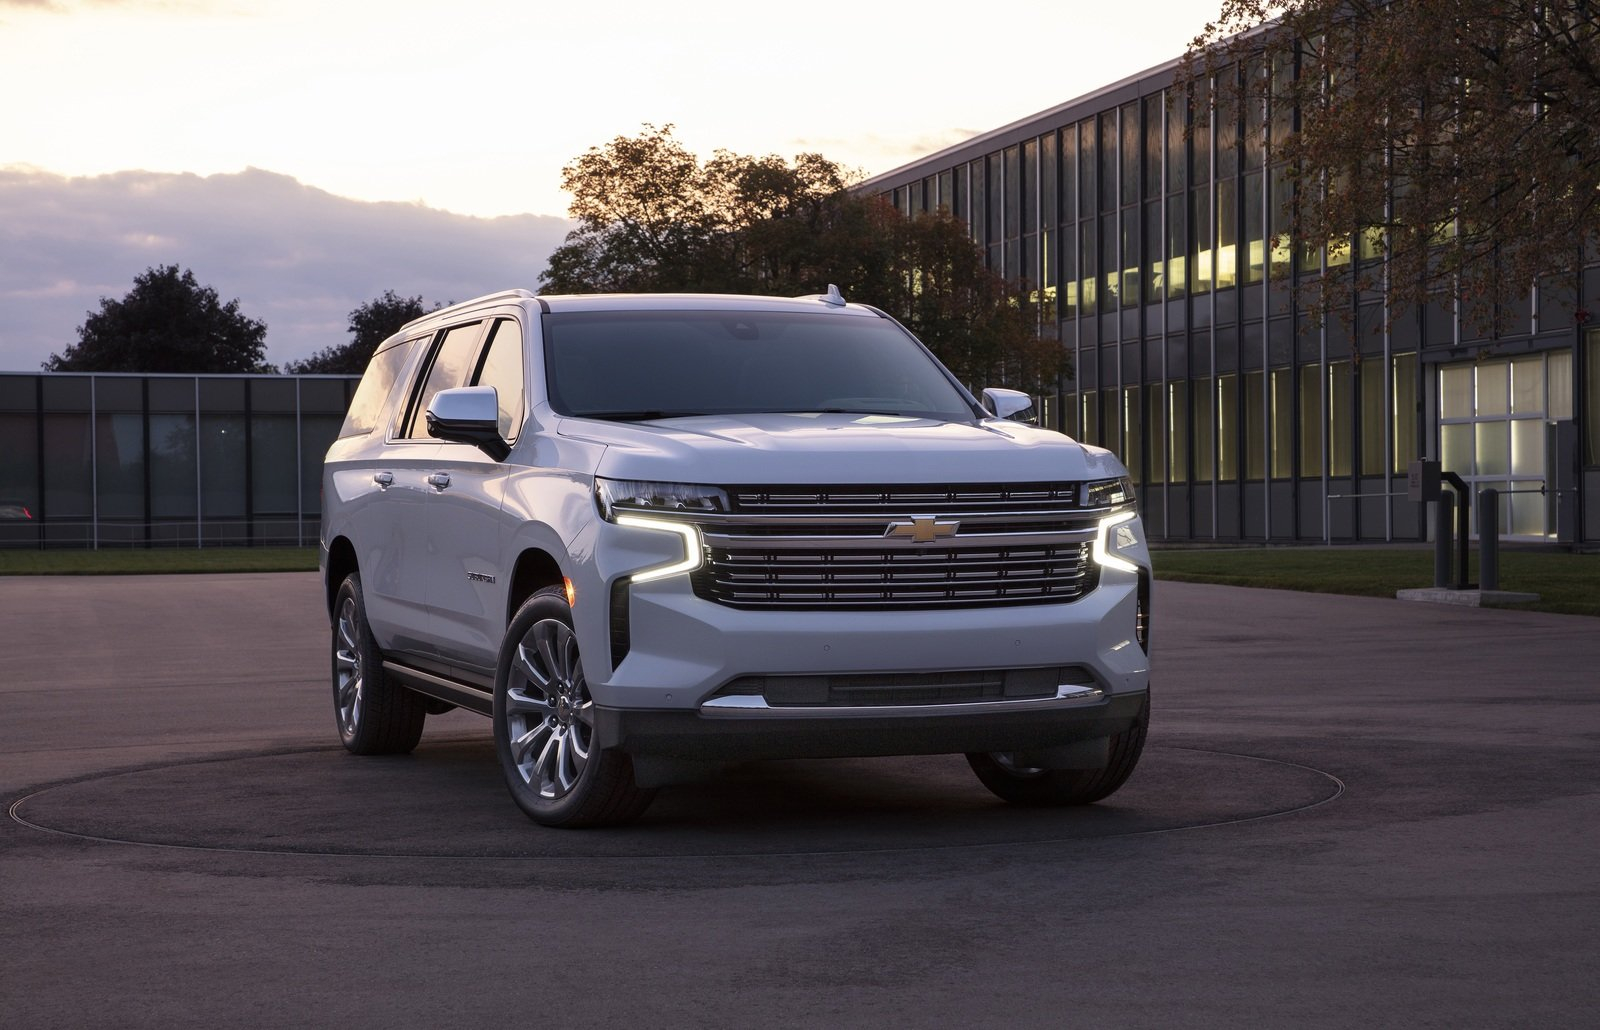 2021 Chevy Suburban 2021 Chevy Suburban Towing, Trim Levels, Tires